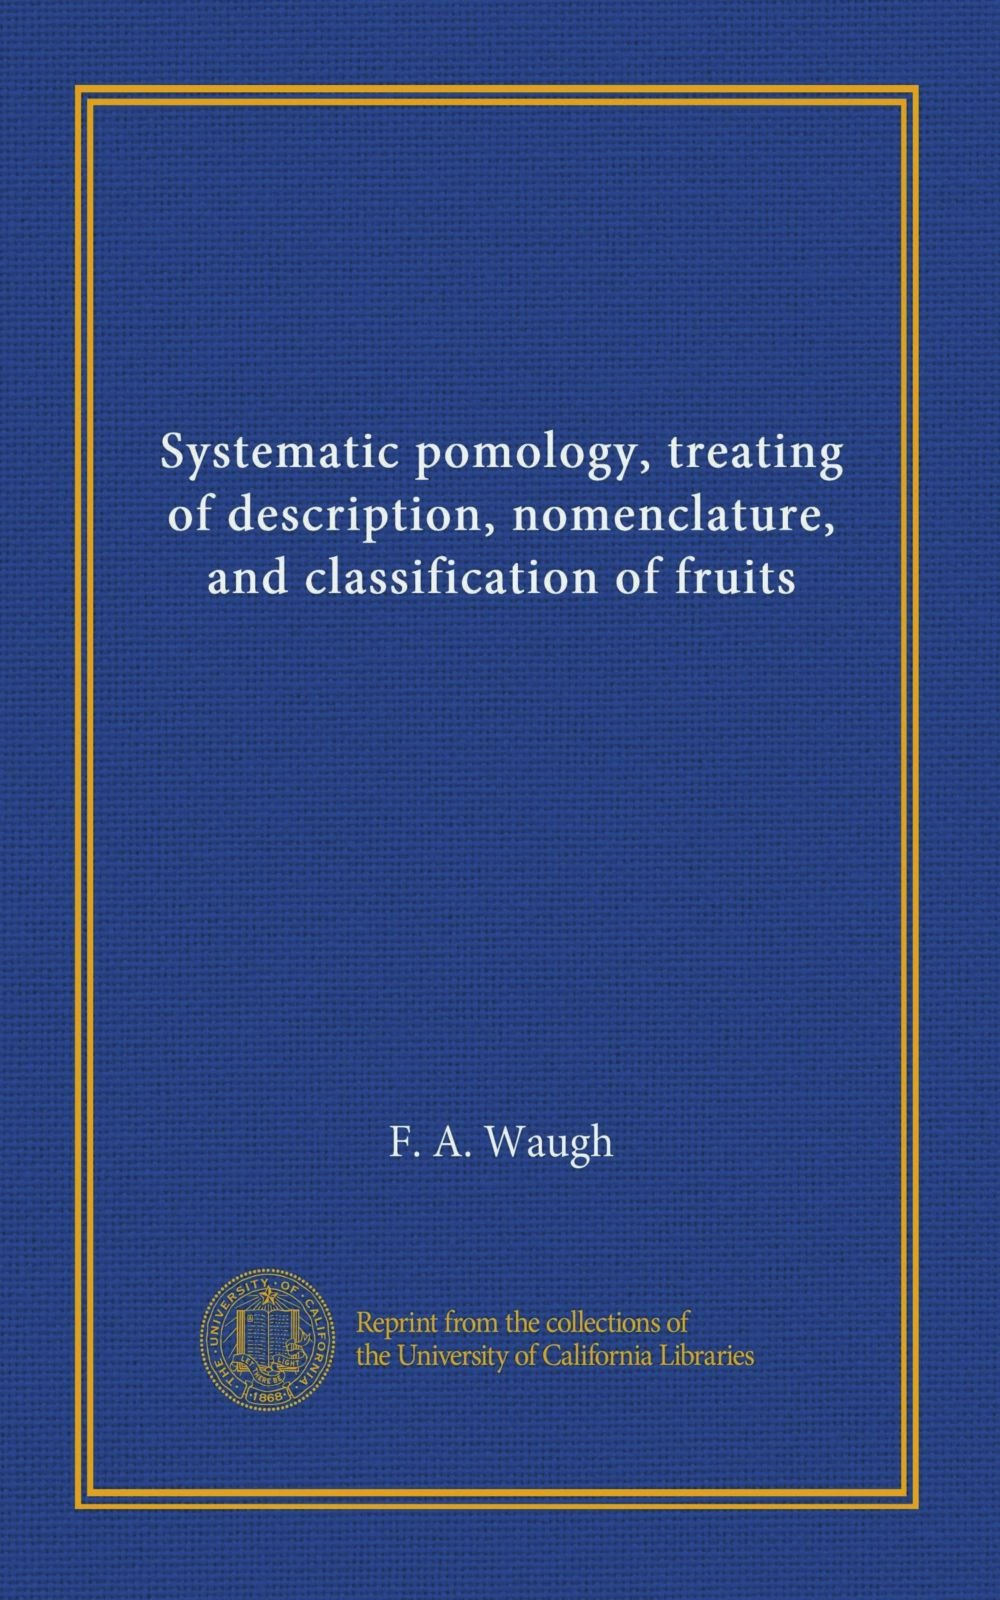 Download Systematic pomology, treating of description, nomenclature, and classification of fruits pdf